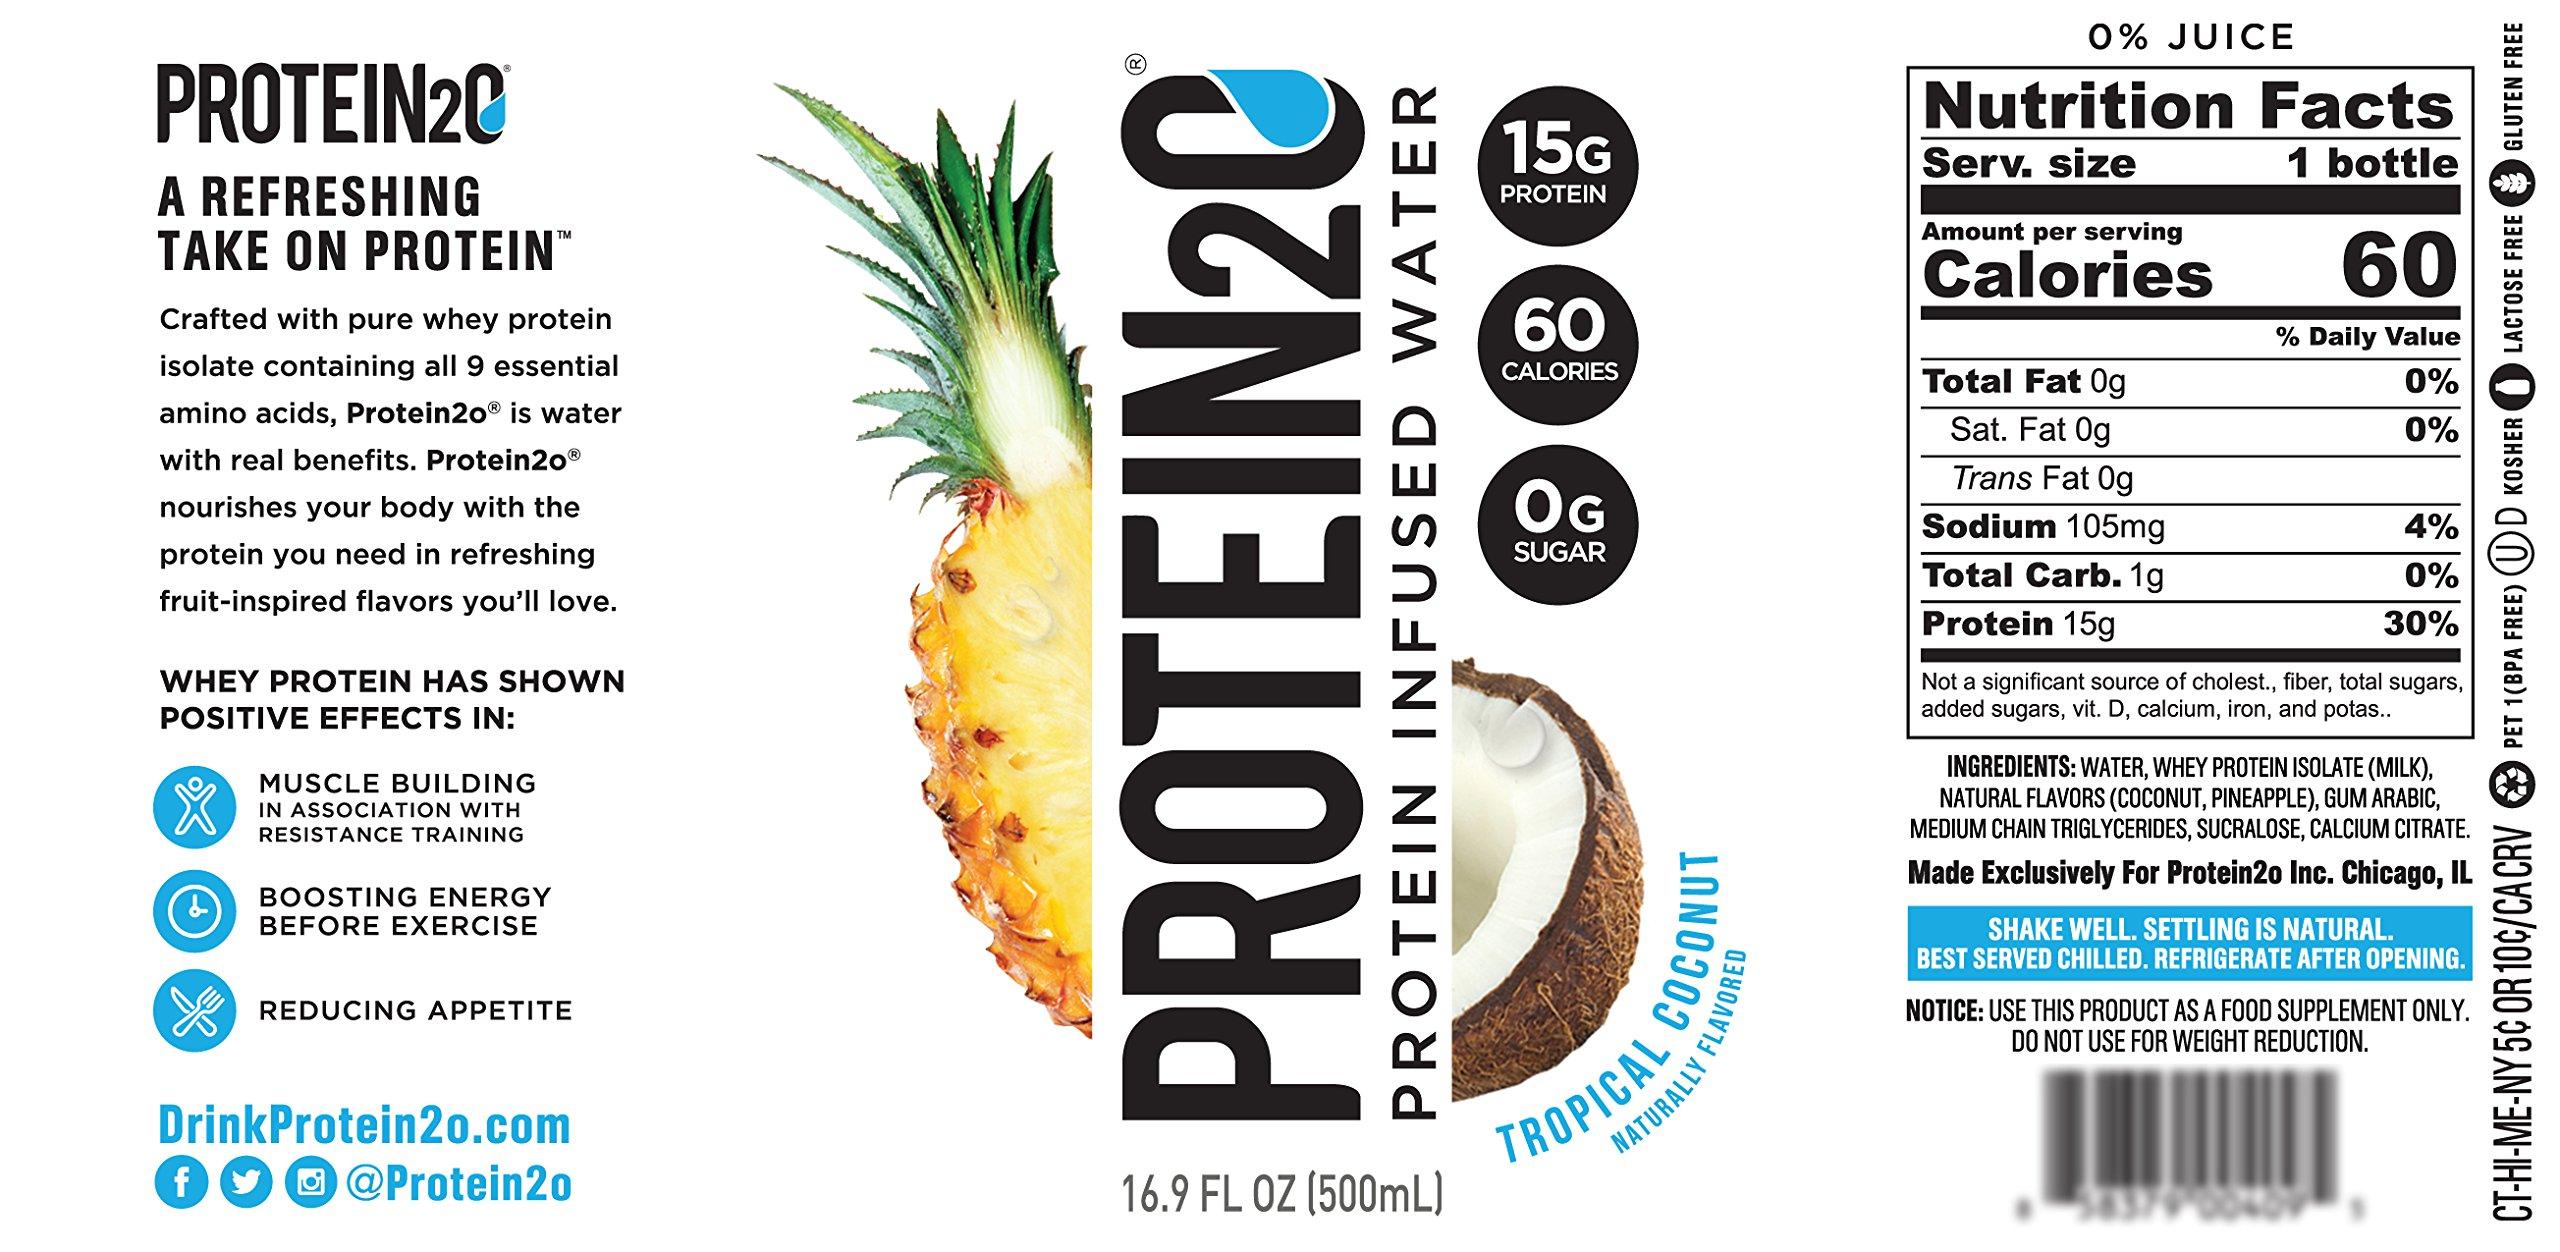 Protein2o Low Calorie Whey Protein Drink, Variety Pack, 16.9 oz (Pack of 12) by Protein2o